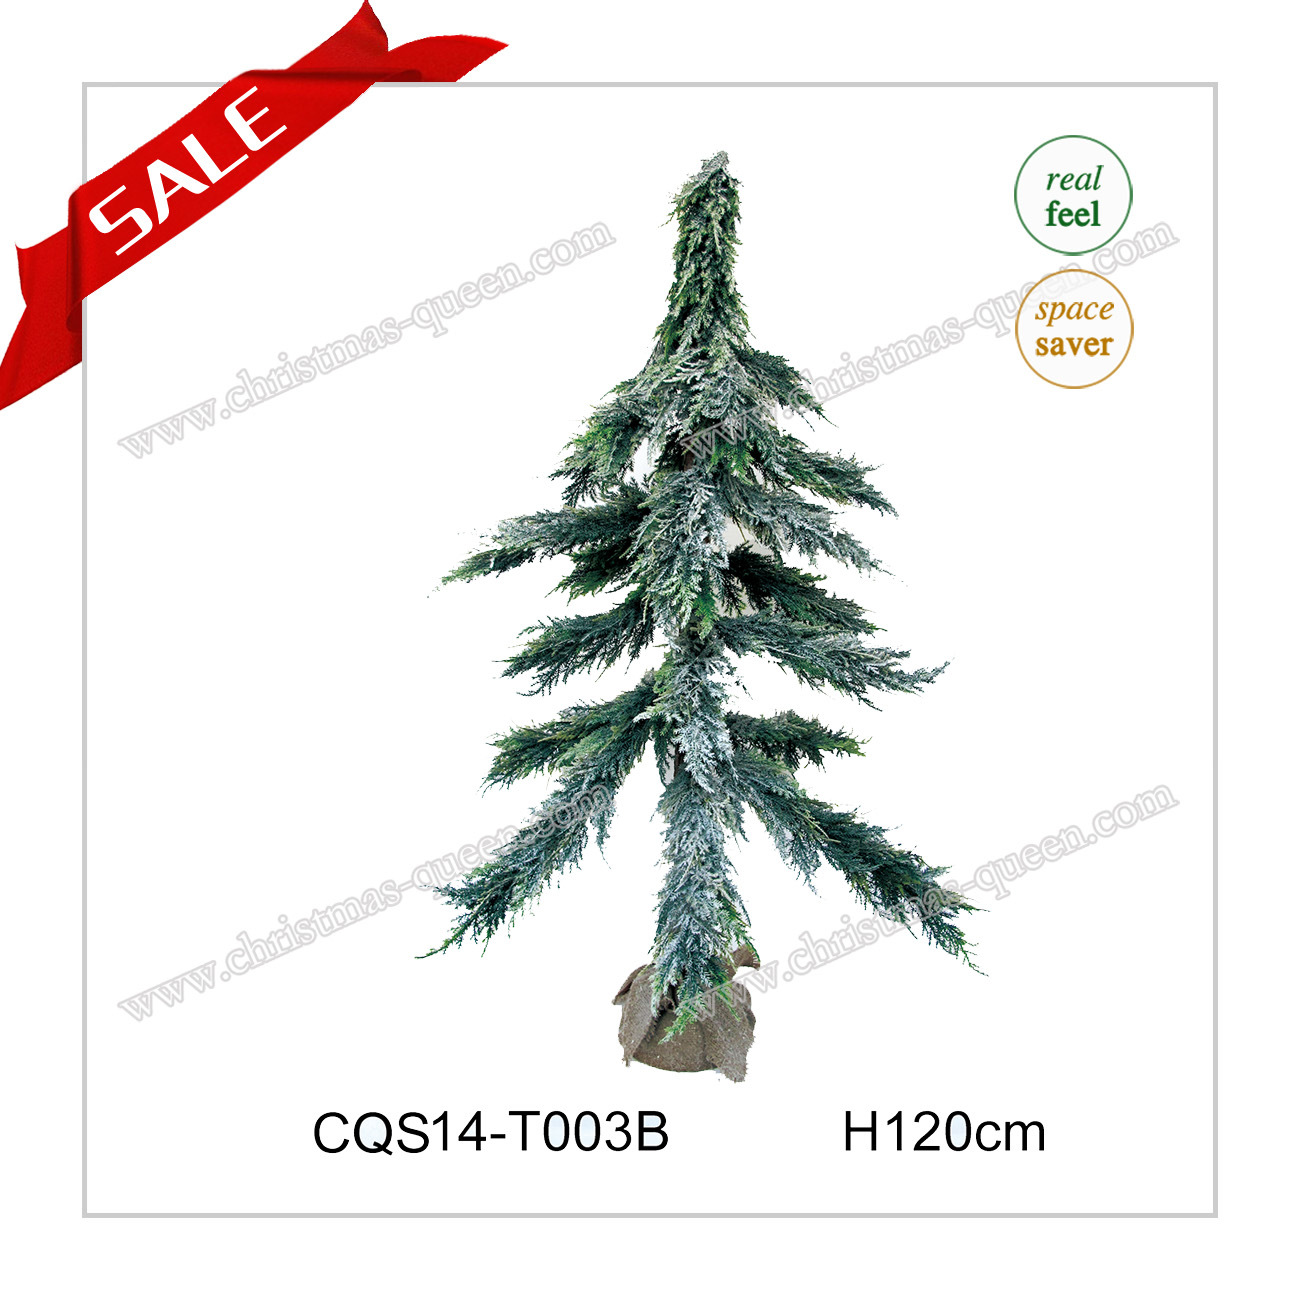 H5 Feet Landscape Christmas LED PE Pine Tree Christmas Ornament